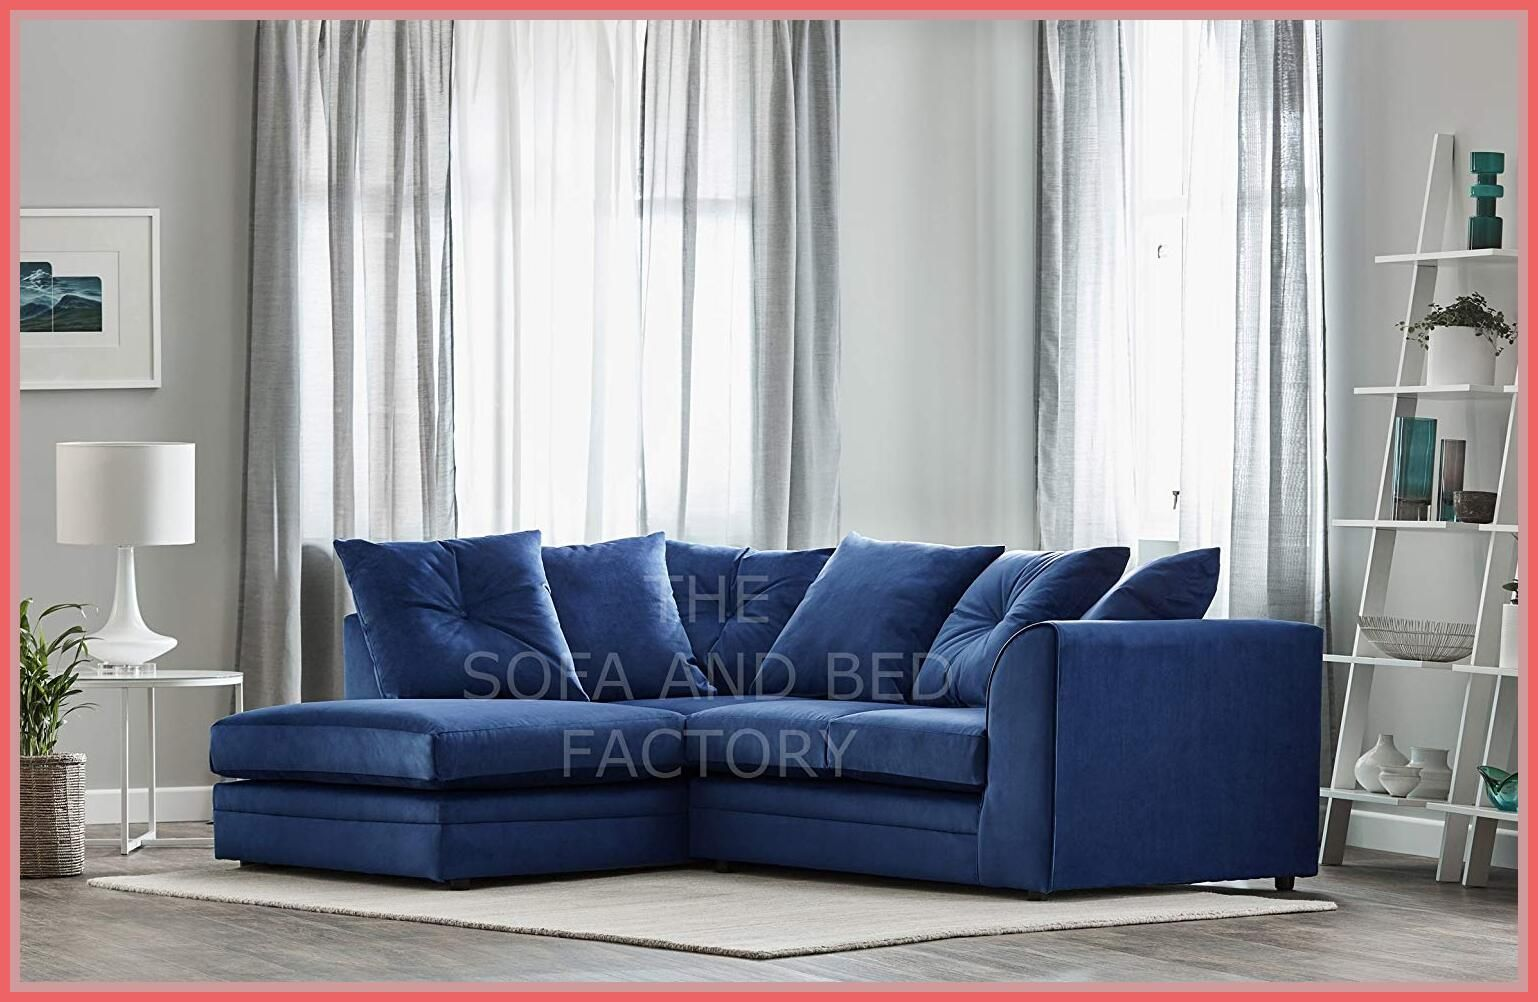 small corner couch amazon #small #corner #couch #amazon For more ideas, you just have to Click The Link! ENJOY!!